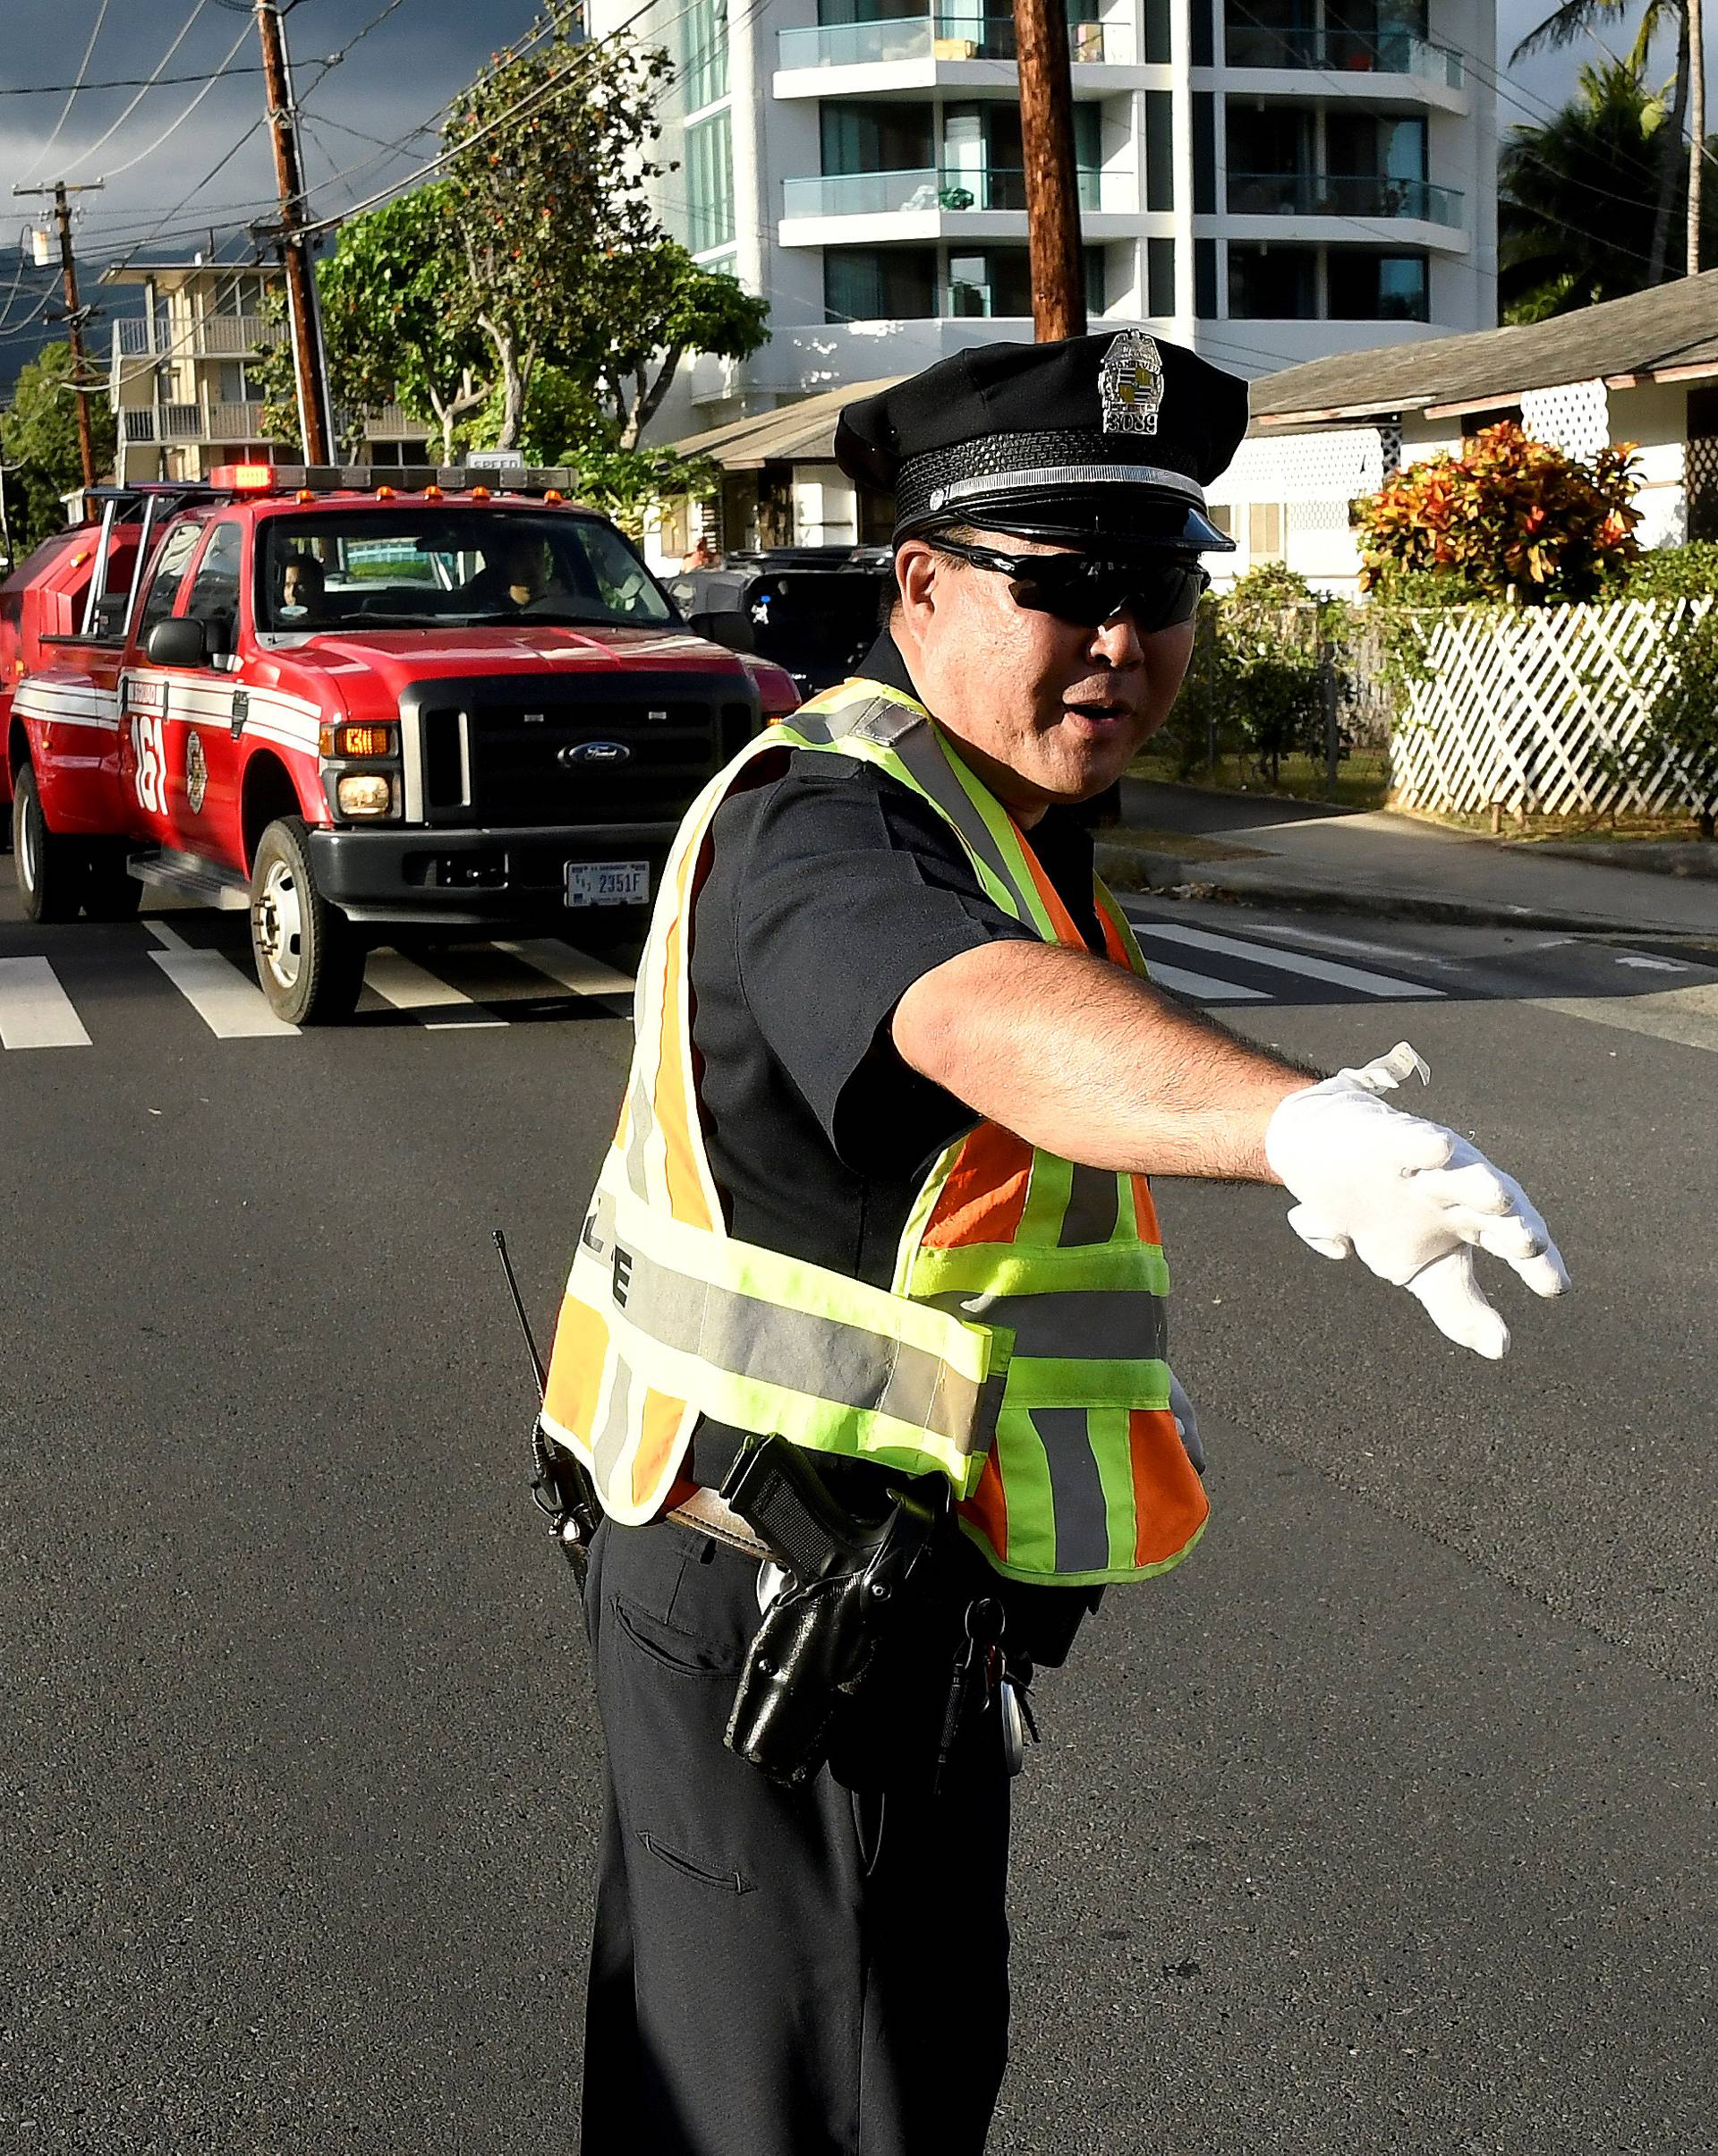 A police officer directs a fire truck to the Marco Polo apartment building after a fire broke out in it in Honolulu, Hawaii.